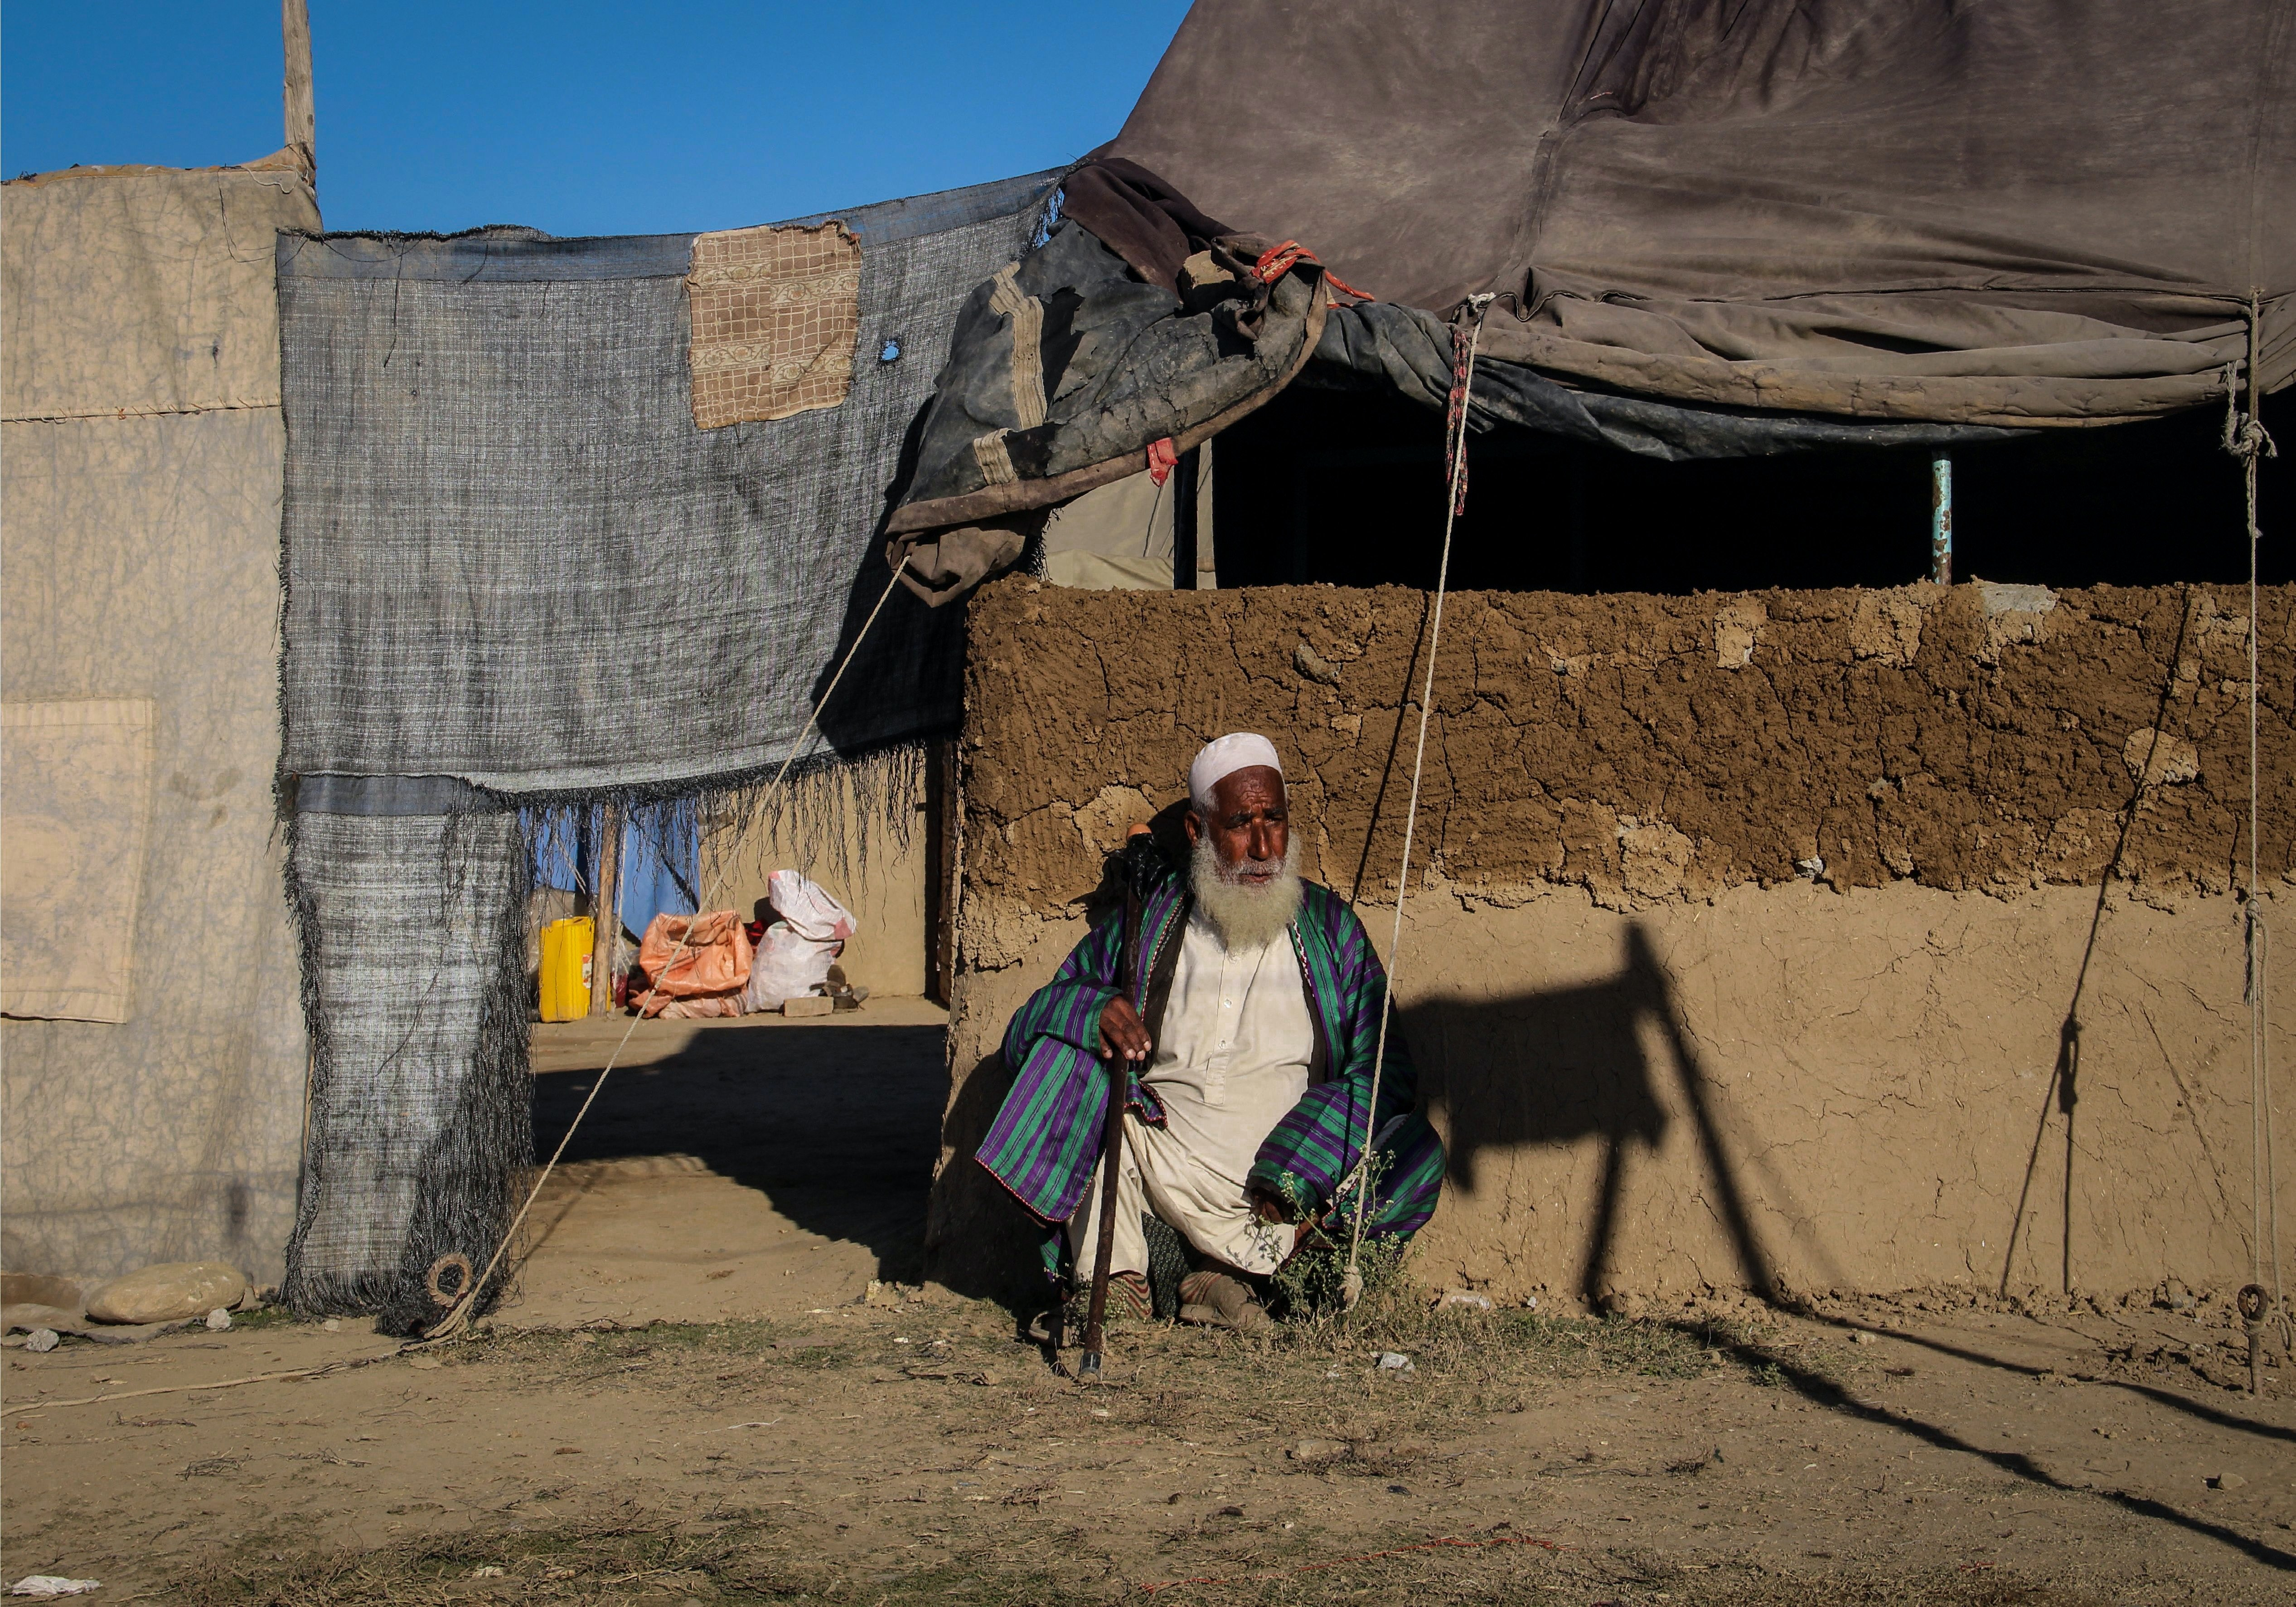 An internally displaced Afghan man sits against the wall of a mud house in Khost province on Dec. 2, 2019.